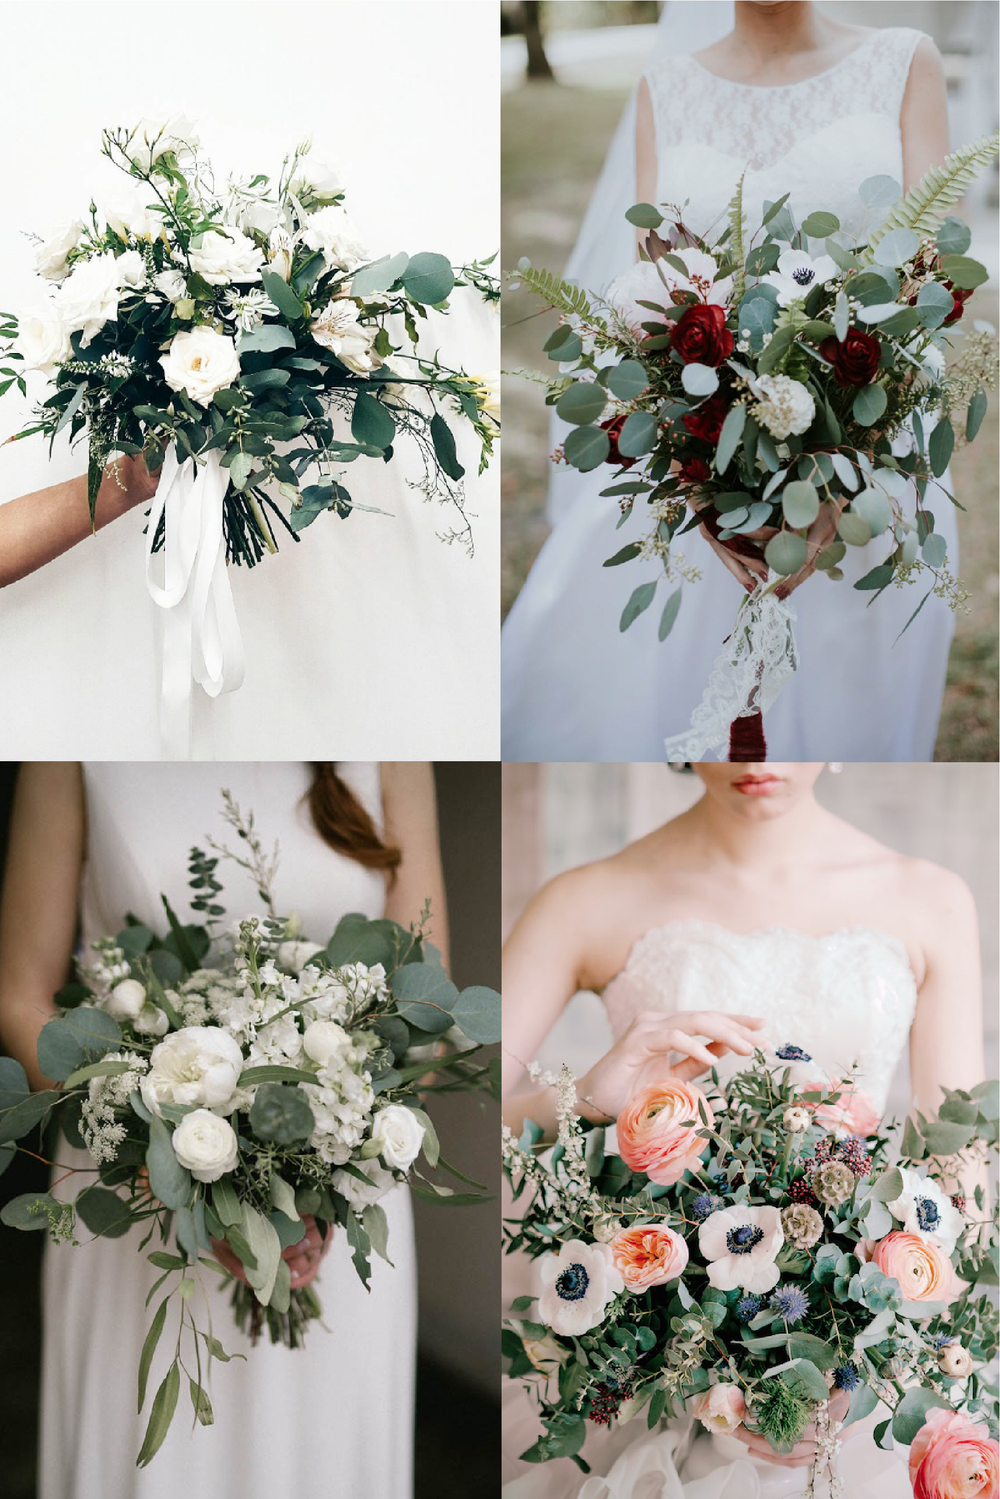 FROM CLOCKWISE, FROM TOP LEFT: FLOWERS BY LIME TREE BOWER ;  FLOWERS BY OH DARLING EVENTS AND PHOTO BY EMILY MAGERS; FLOWERS BY KRISTINA KABERNE AND PHOTO BY  IRINA KLIMOVA; FLOWERS BY  BLOMMA FLORAL AND DESIGN AND PHOTO BY  SALLY O'DONNELL PHOTOGRAPHY.